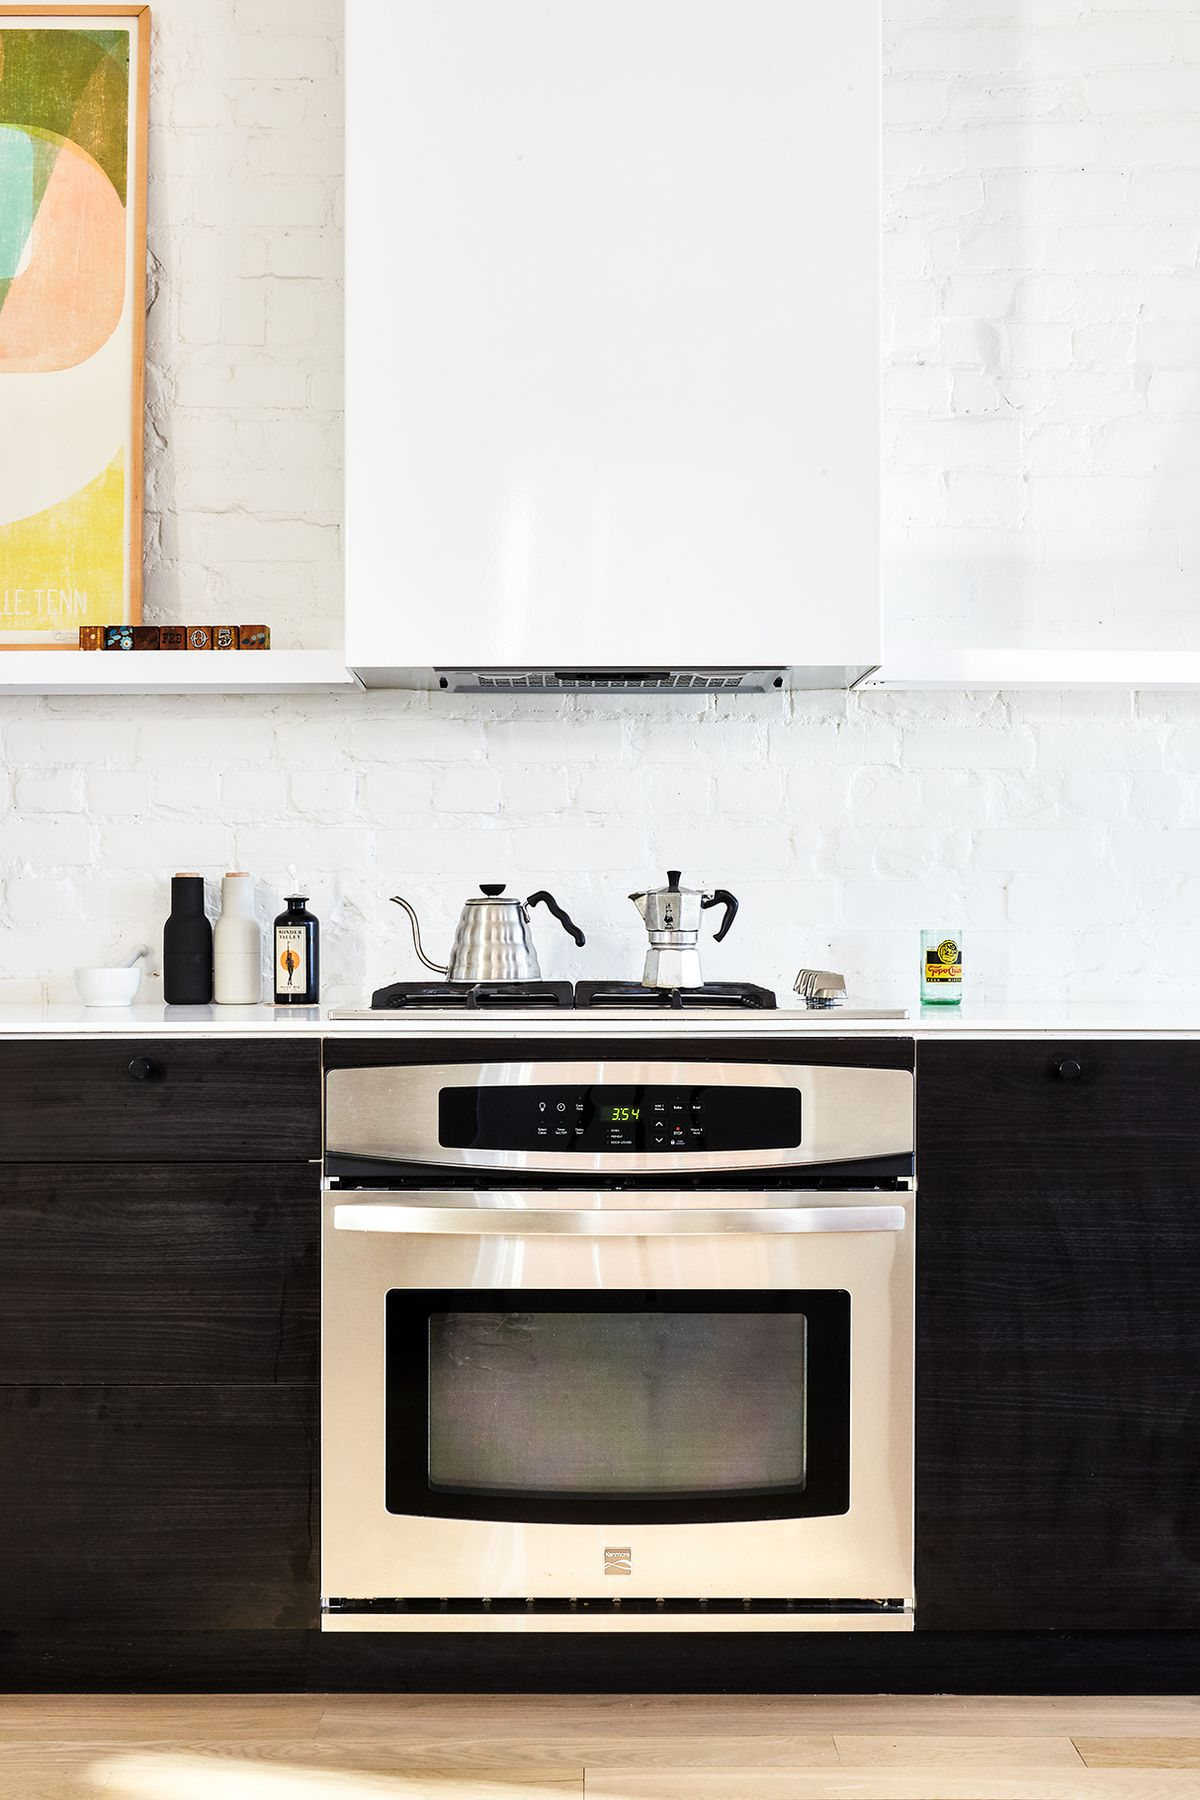 A kitchen with black cabinetry and white exposed brick walls. There is an oven and on the stove are a kettle and coffee maker.